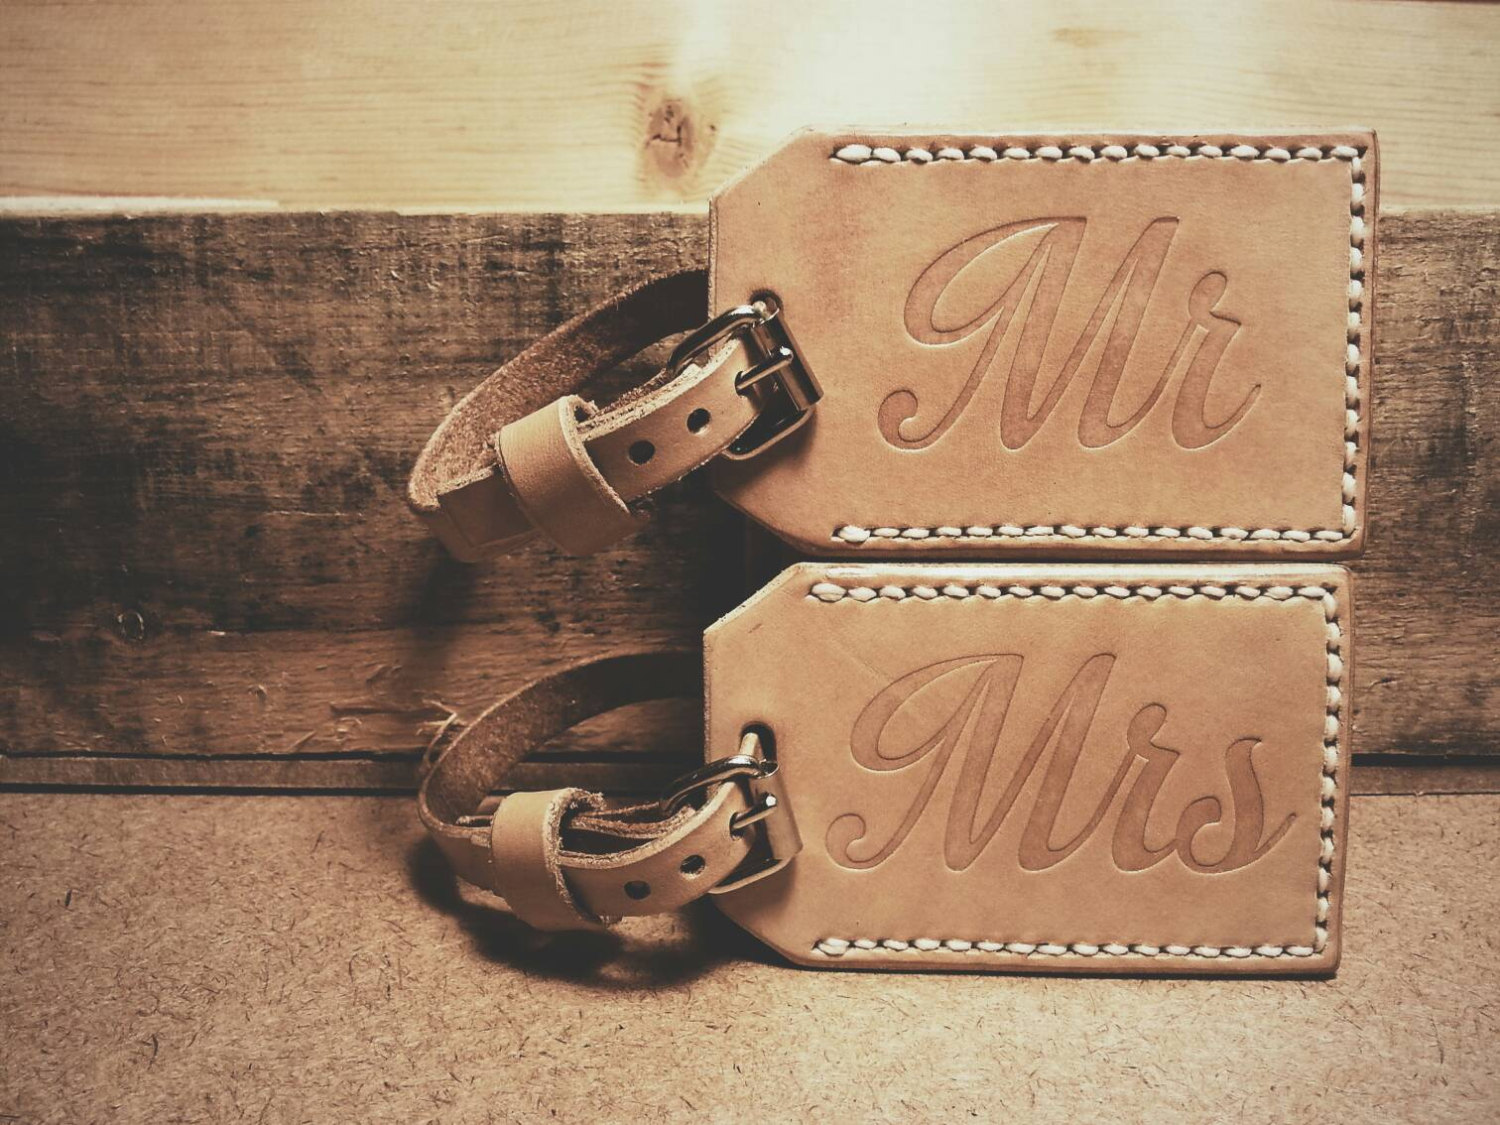 Leather Luggage Tag Mr & Mrs, Premium Bag For Wedding Gift, Anniversary 3rd Or Honeymoon